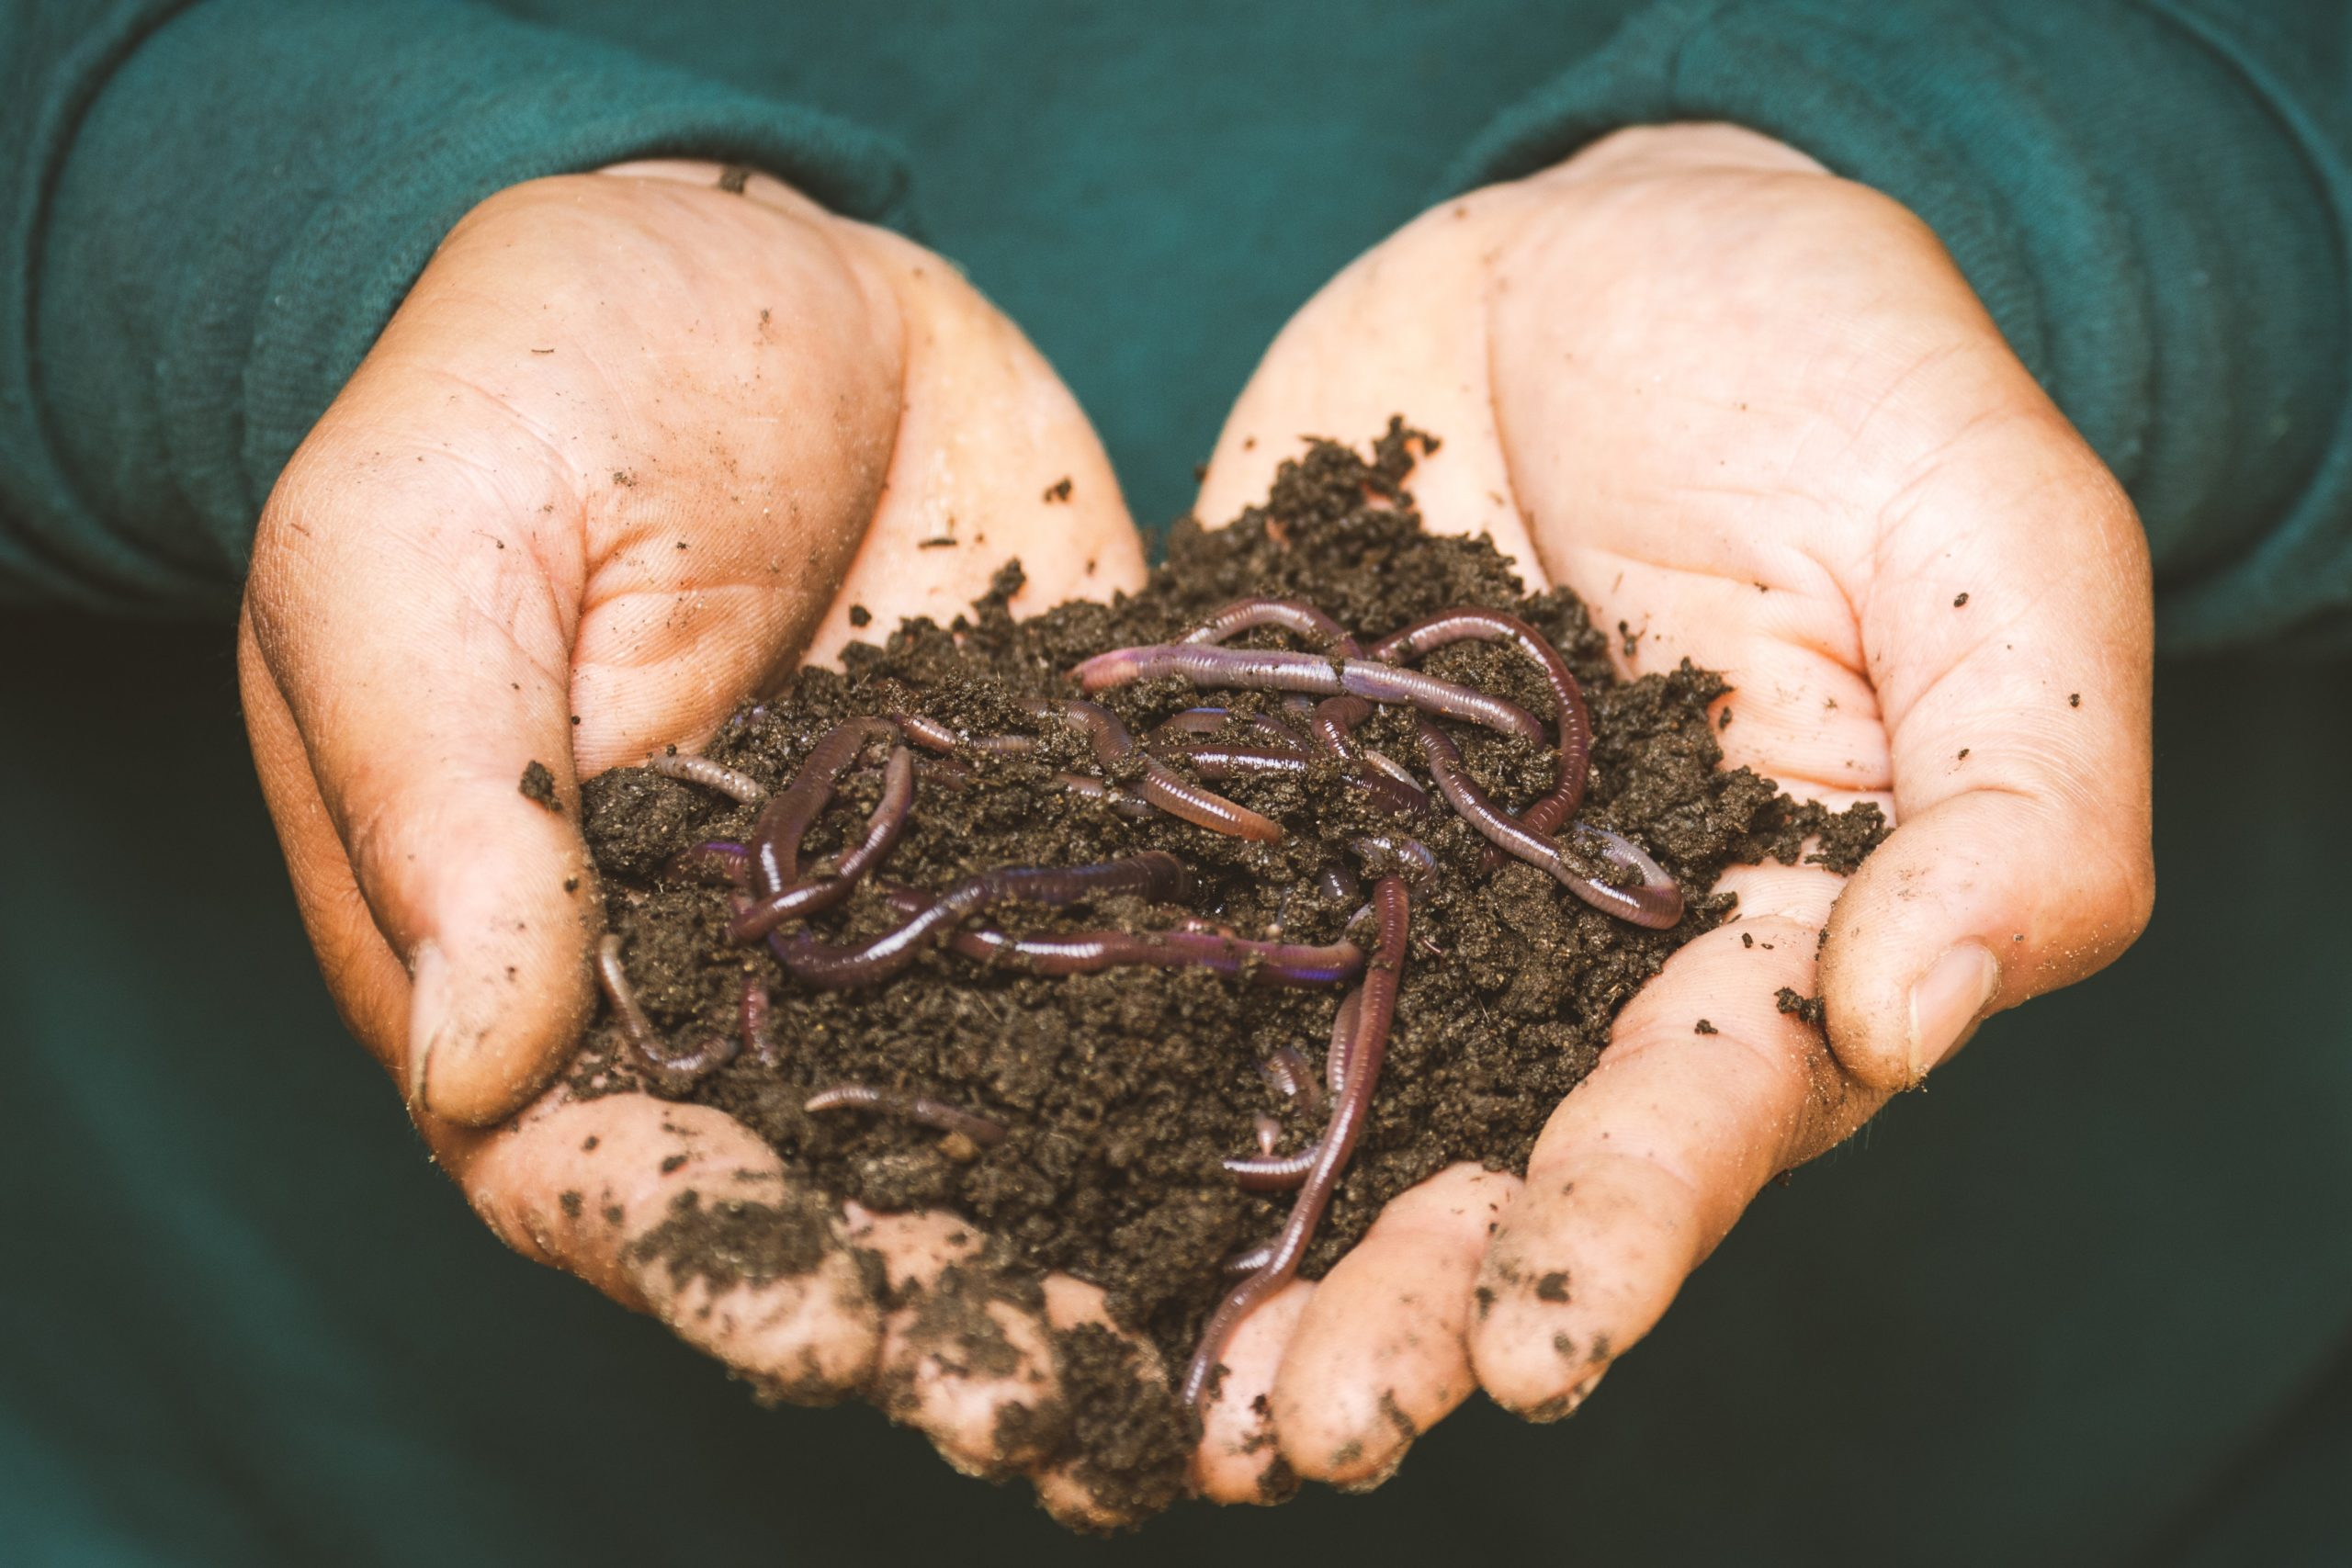 With the no dig method, add organic matter and let worms improve the soil for you